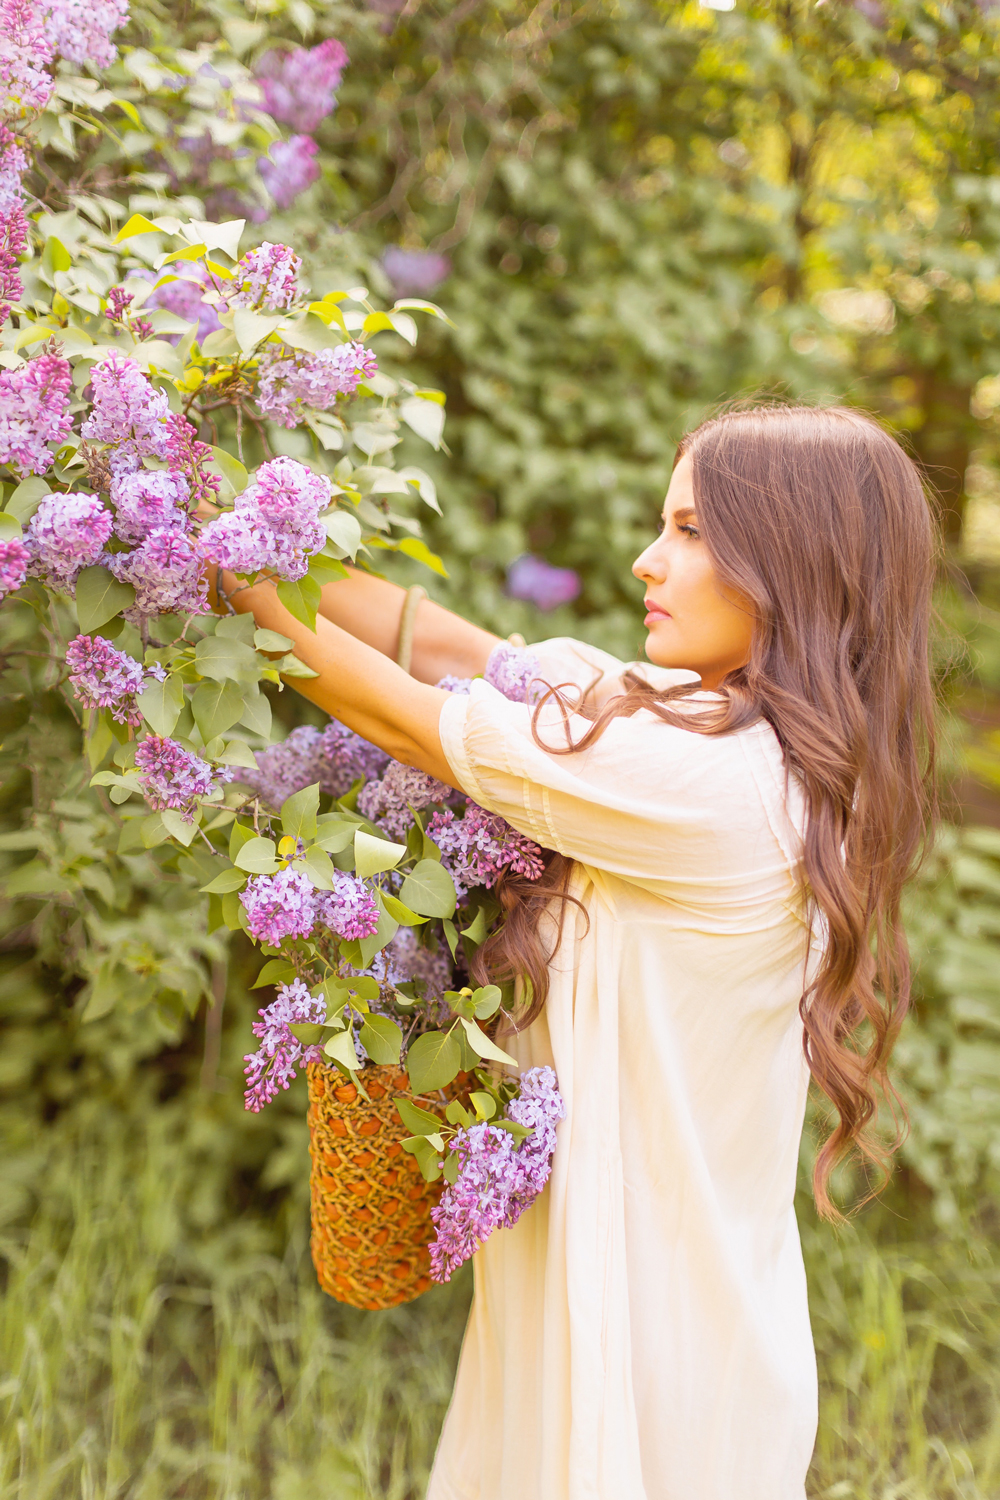 Brunette women with long wavy hair cutting lilacs from a large tree in a flowy linen dress | DIY Lilac Flower Arrangement | How to Forage Lilacs | How to Cut Lilacs from Bush or Tree | How to Prolong Lilac Vase Life | How to Arrange Lilacs | Fresh Lilac Flower Bouquet | Extremely Pretty Lilac Arrangement | Purple Lilac Arrangement | How to Cut Lilacs from a tree or bush | Calgary Creative Lifestyle Blogger // JustineCelina.com